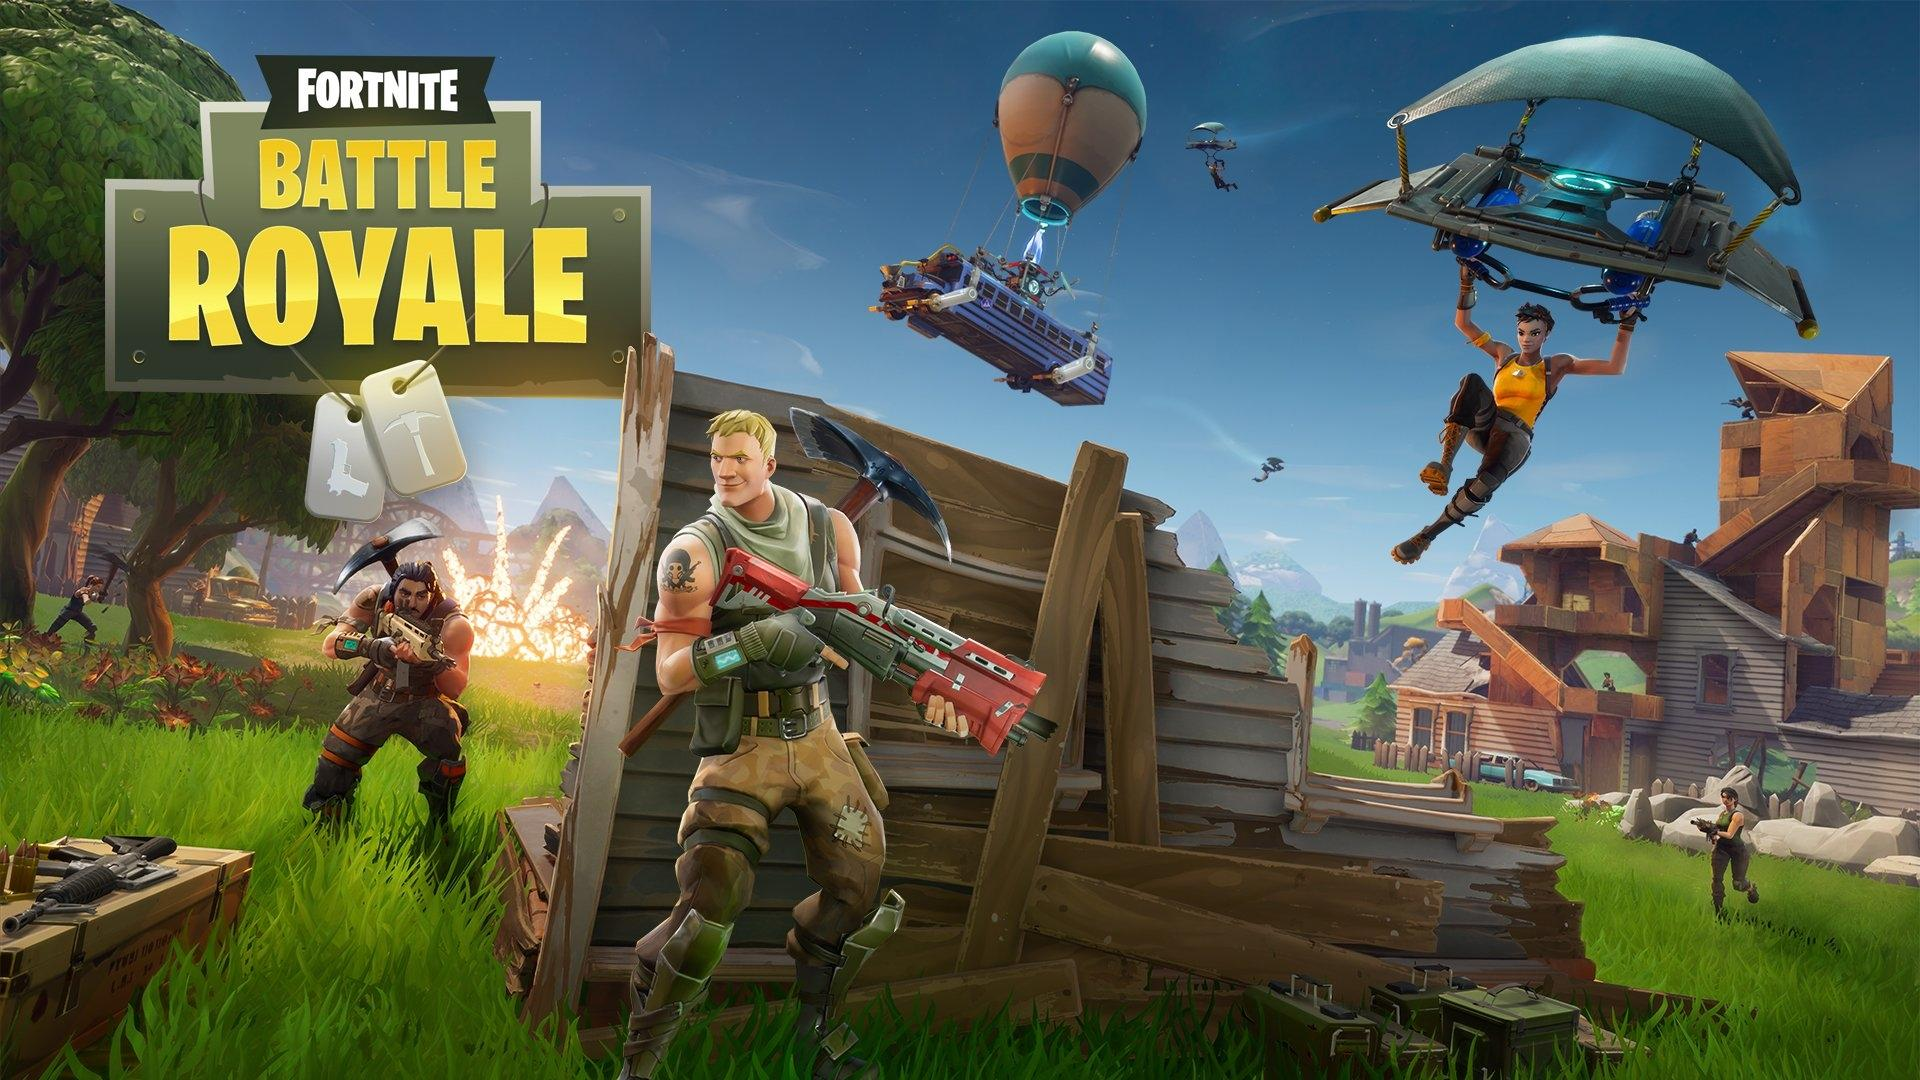 PUBG' studio isn't happy about 'Fortnite: Battle Royale'